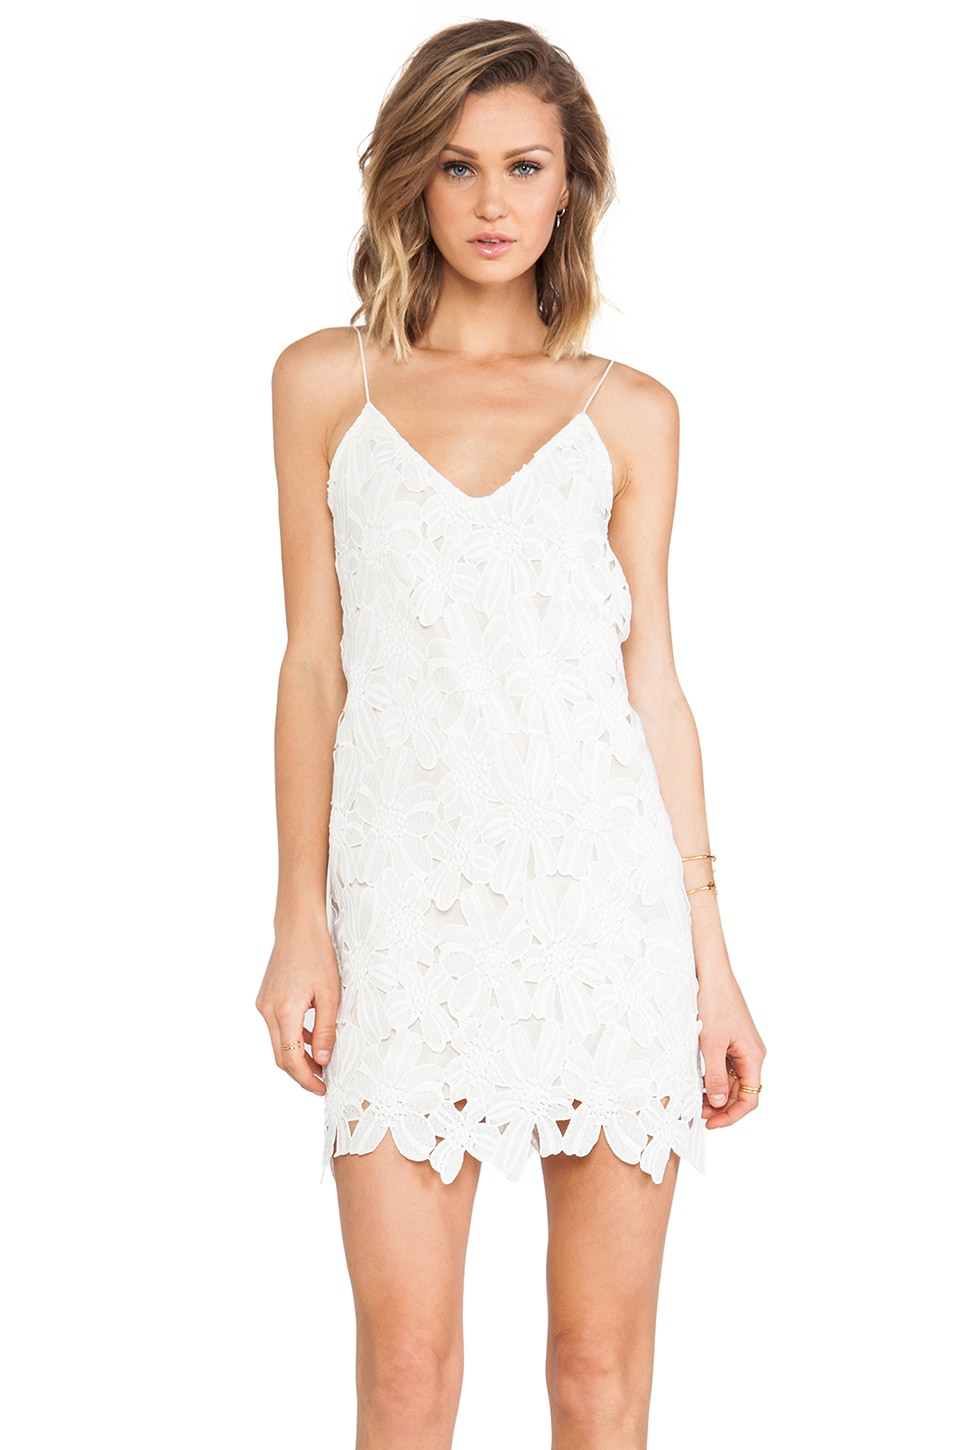 Dolce Vita Abriella Dress in White